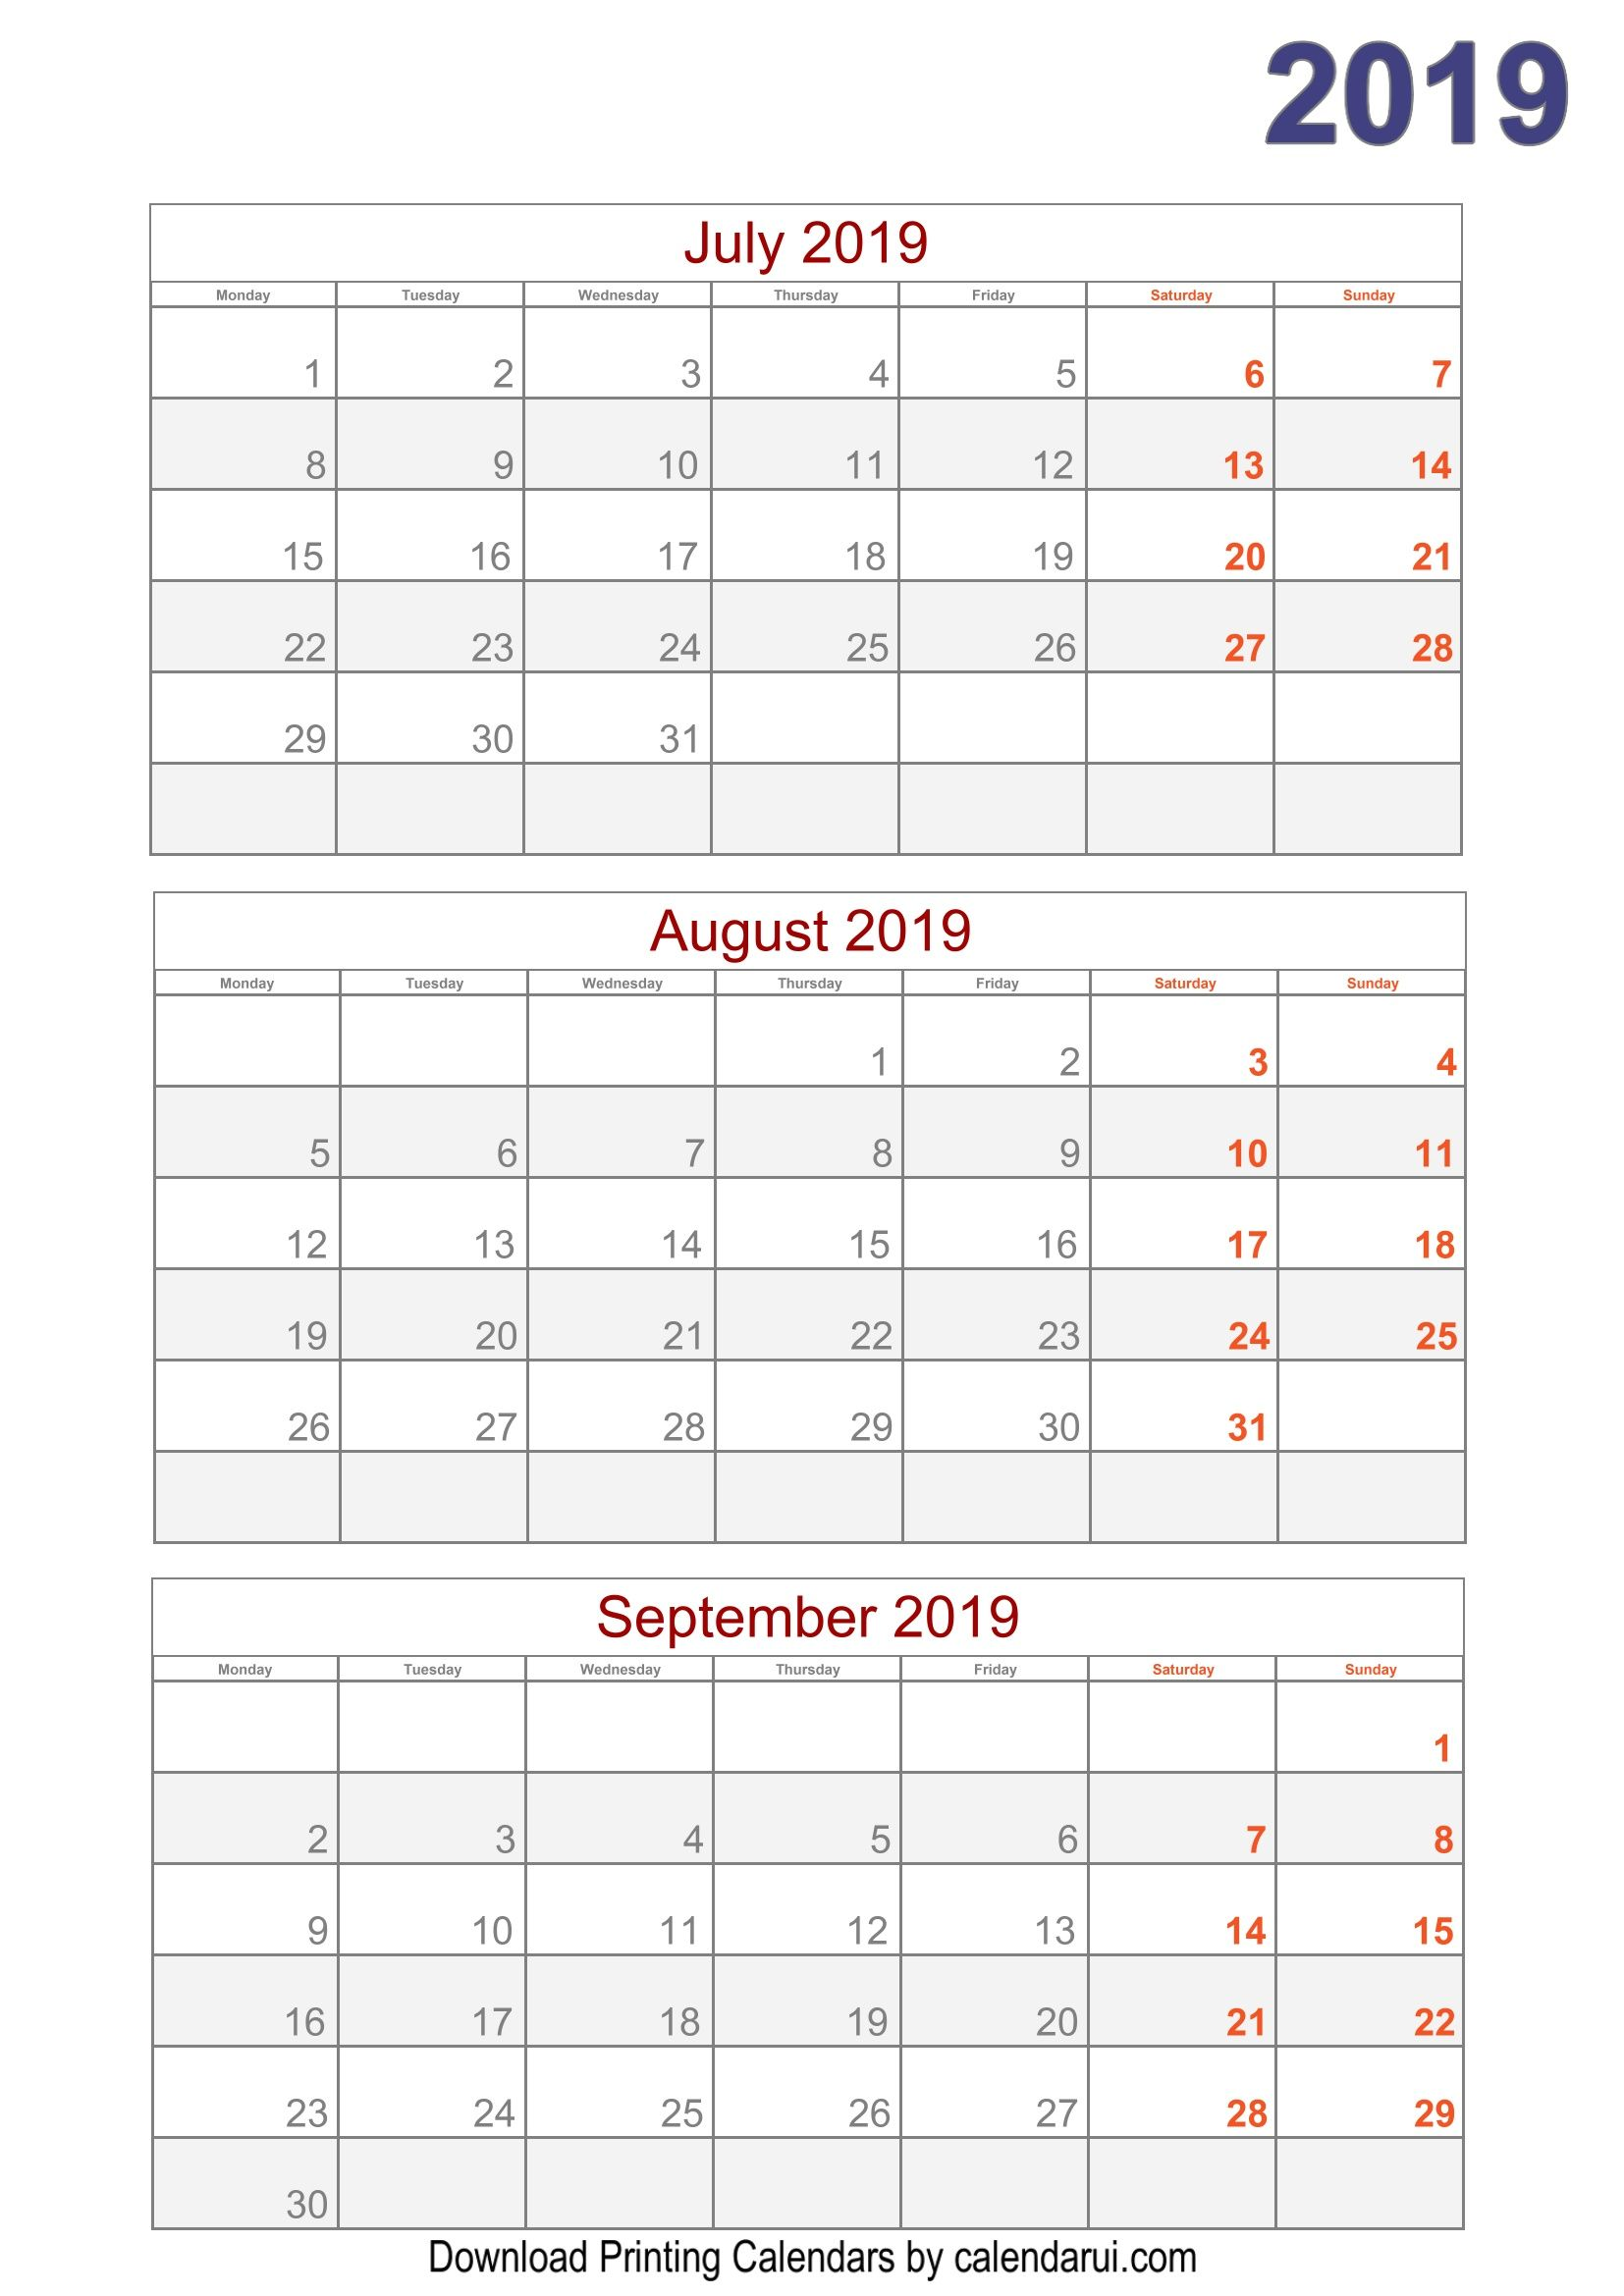 2019 Quarterly Calendar Printable For Free Template Pdf